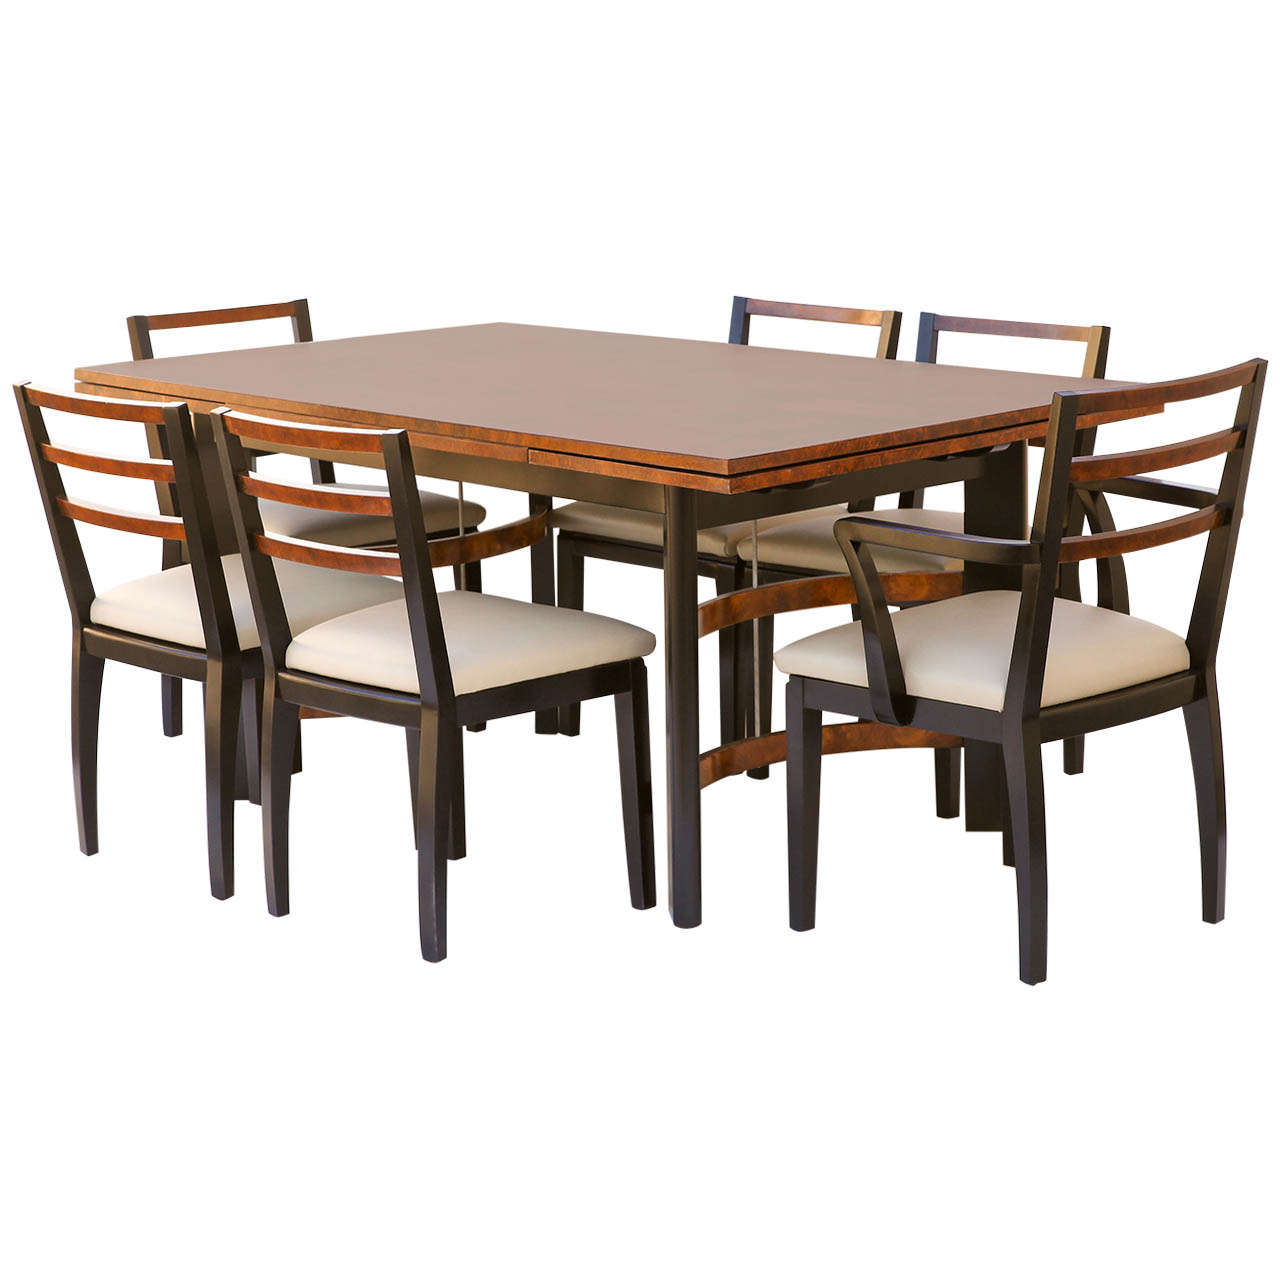 Art Deco Dining Room Sets: Hastings Art Deco Dining Set By Teague Or Deskey At 1stdibs